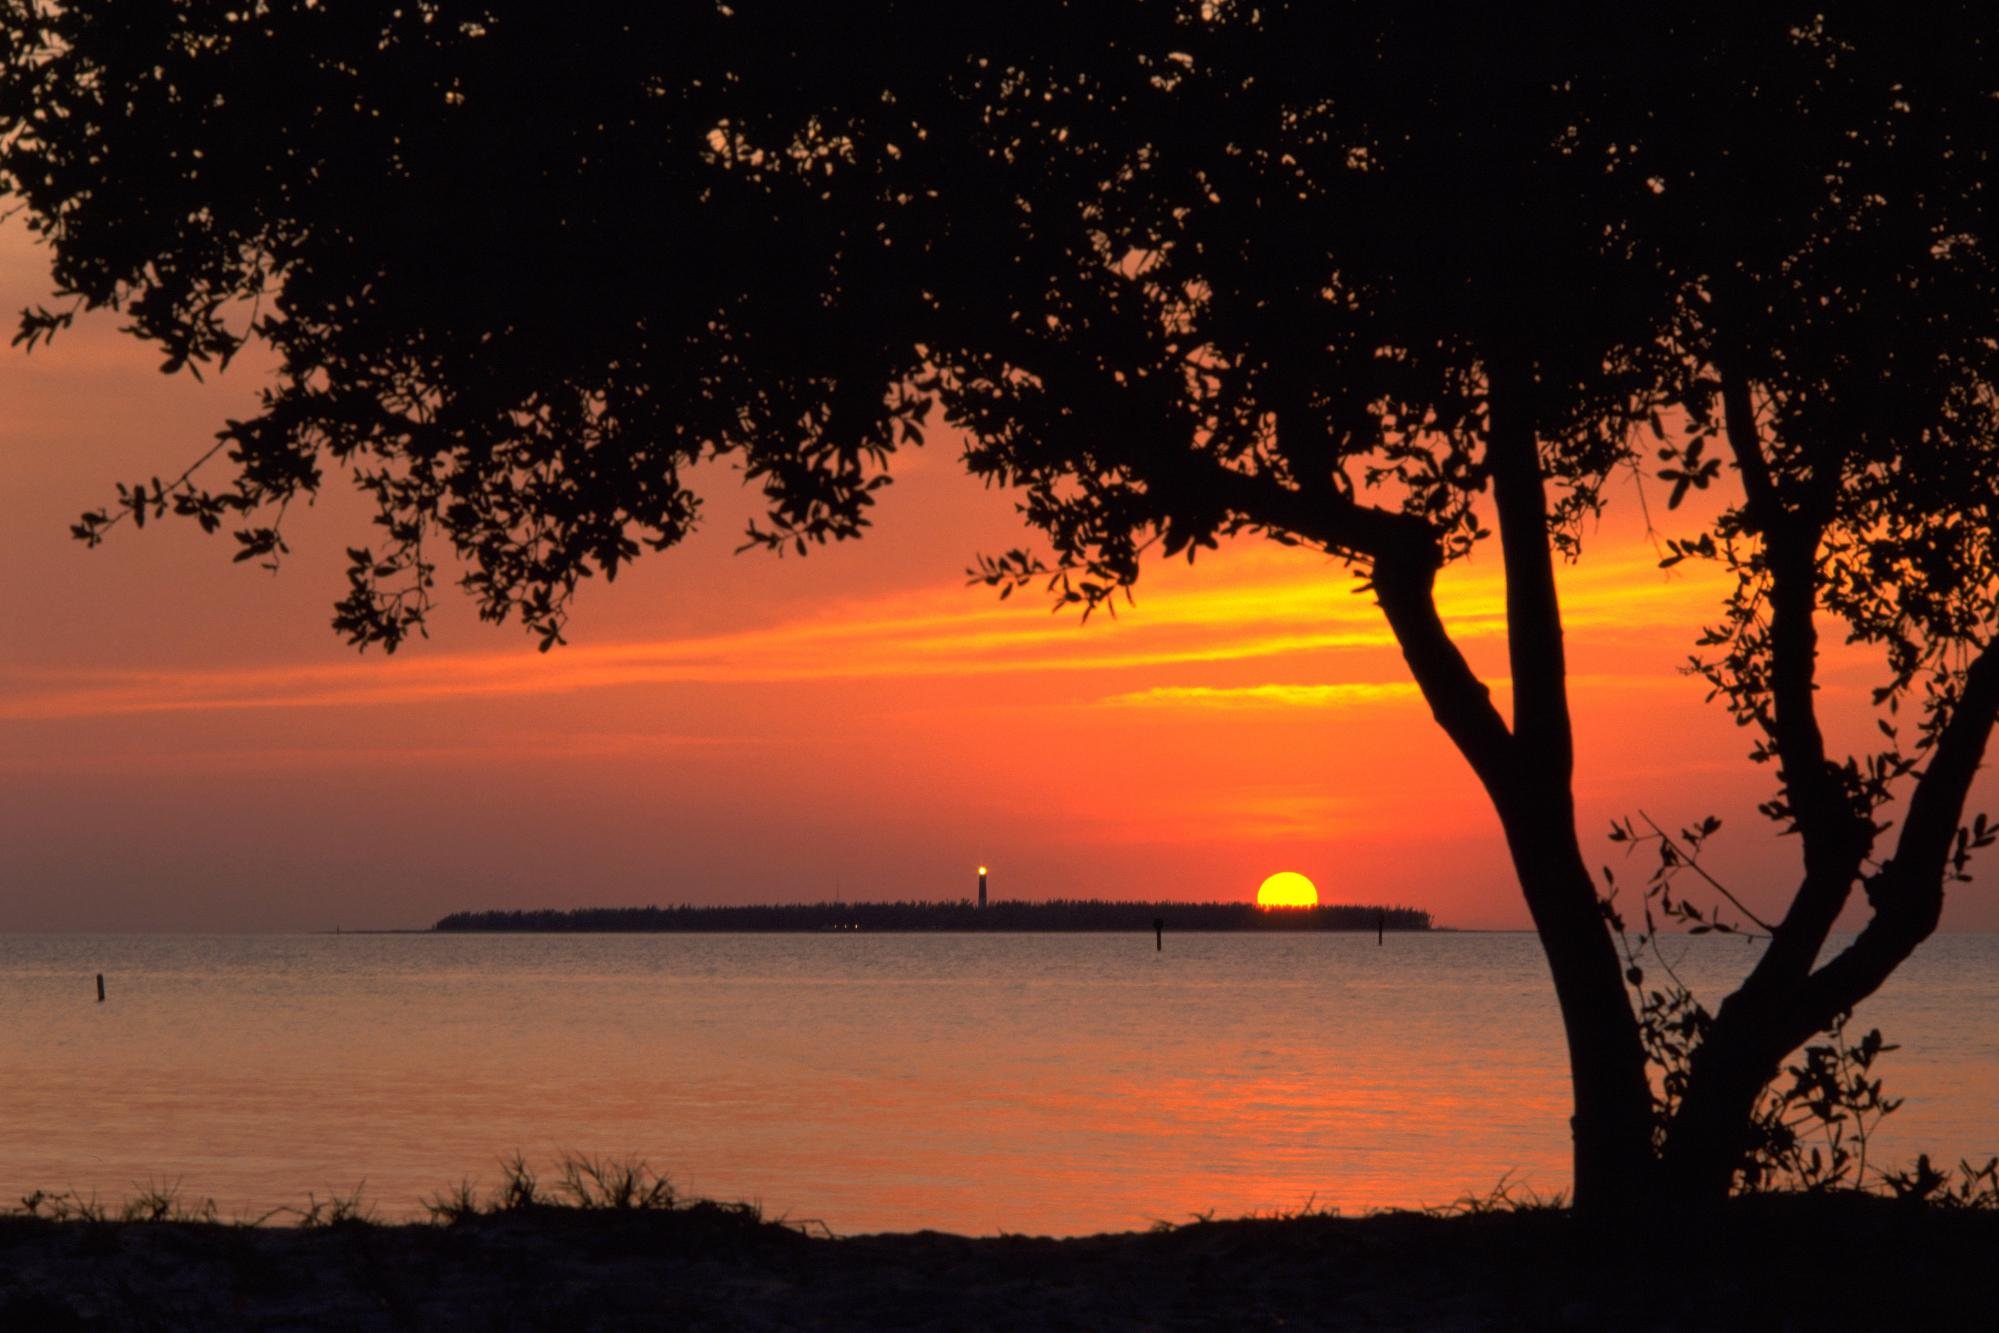 Sunset View from Fort Jefferson, Dry Tortugas National Park, Florida